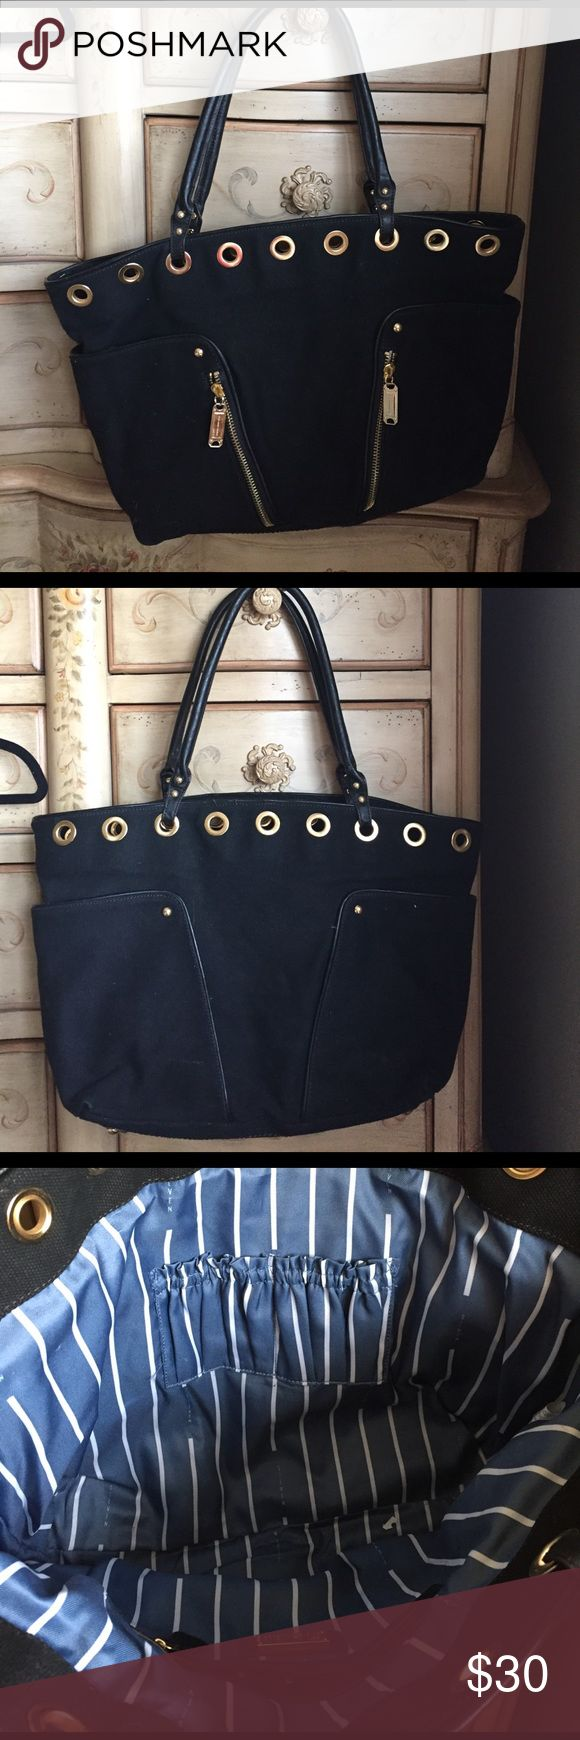 Barely used Steve Madden tore bag! Barely used, in great condition Steve Madden black tote bag! Two side exterior pockets and two front zipped pockets! Interior is blue and white striped two smaller side compartments for a phone, charger, headphones etc and one larger zipped pocket! Steve Madden Bags Totes